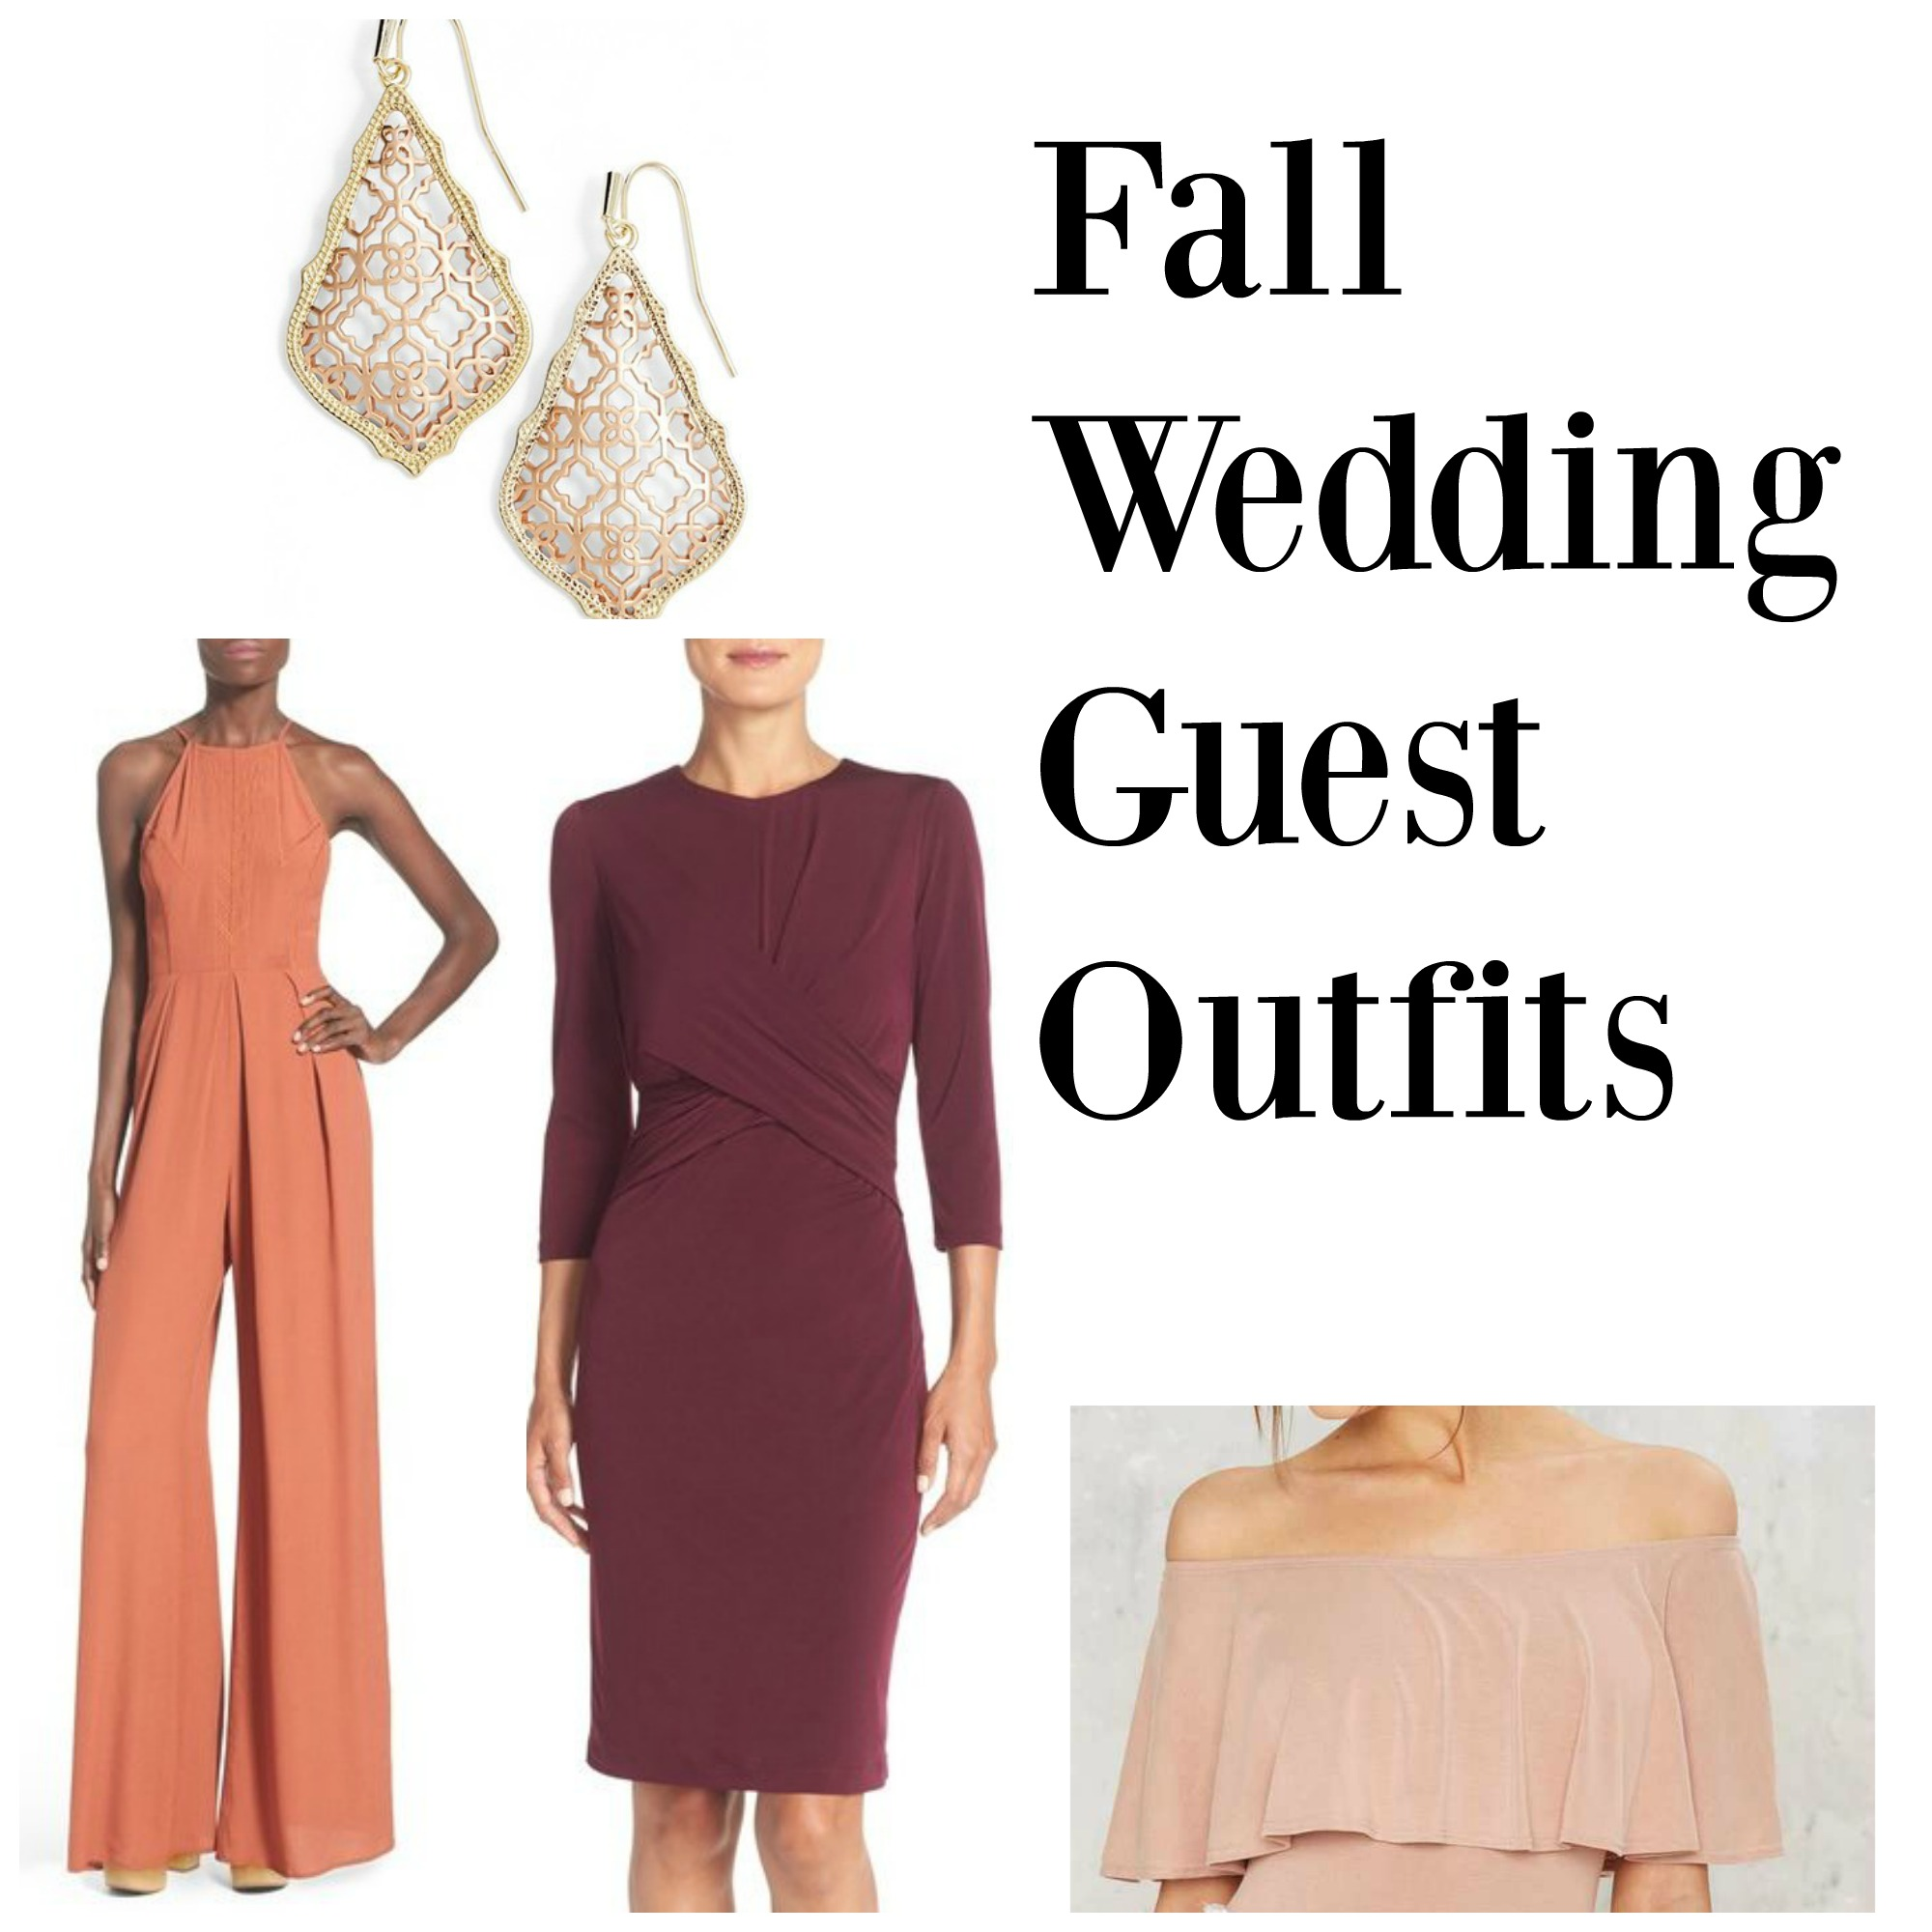 fall wedding guest outfits fierce looks